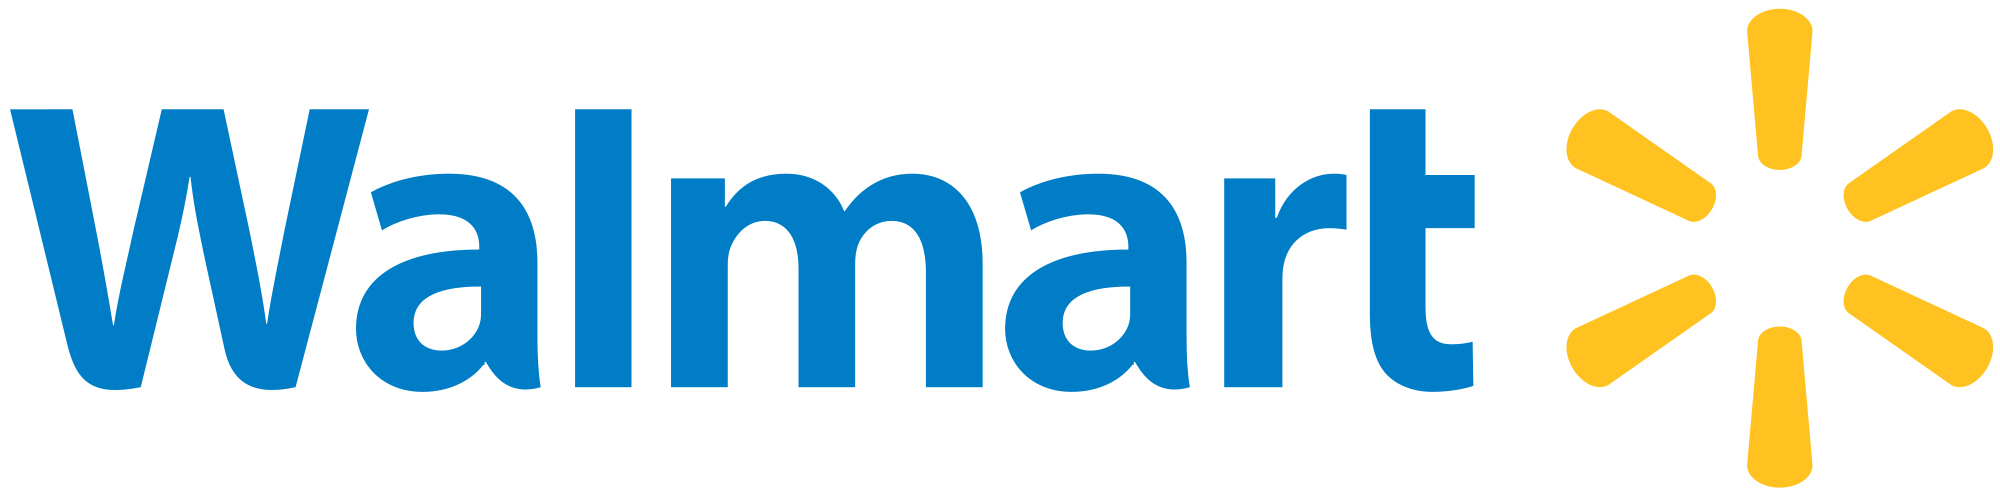 Walmart Partners With Affirm To Provide Credit Option To Customers >> Affirm And Walmart Announce Omnichannel Partnership Business Wire